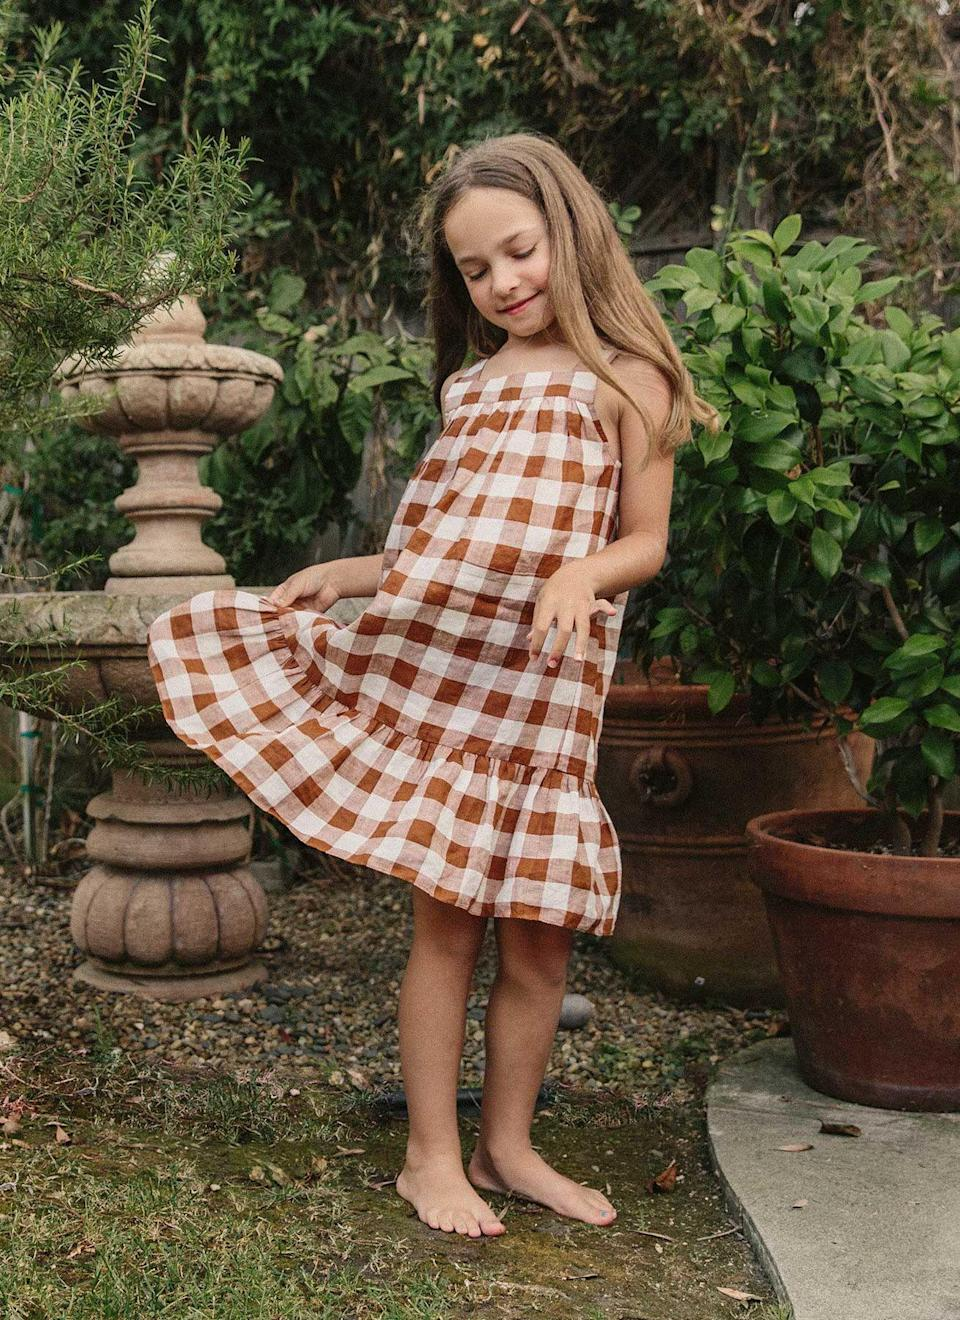 "<p>heathertaylorhome.com</p><p><strong>$94.00</strong></p><p><a href=""https://heathertaylorhome.com/shop/hth-x-doen-gingham-nutmeg-little-eve-dress/"" rel=""nofollow noopener"" target=""_blank"" data-ylk=""slk:Shop Now"" class=""link rapid-noclick-resp"">Shop Now</a></p>"